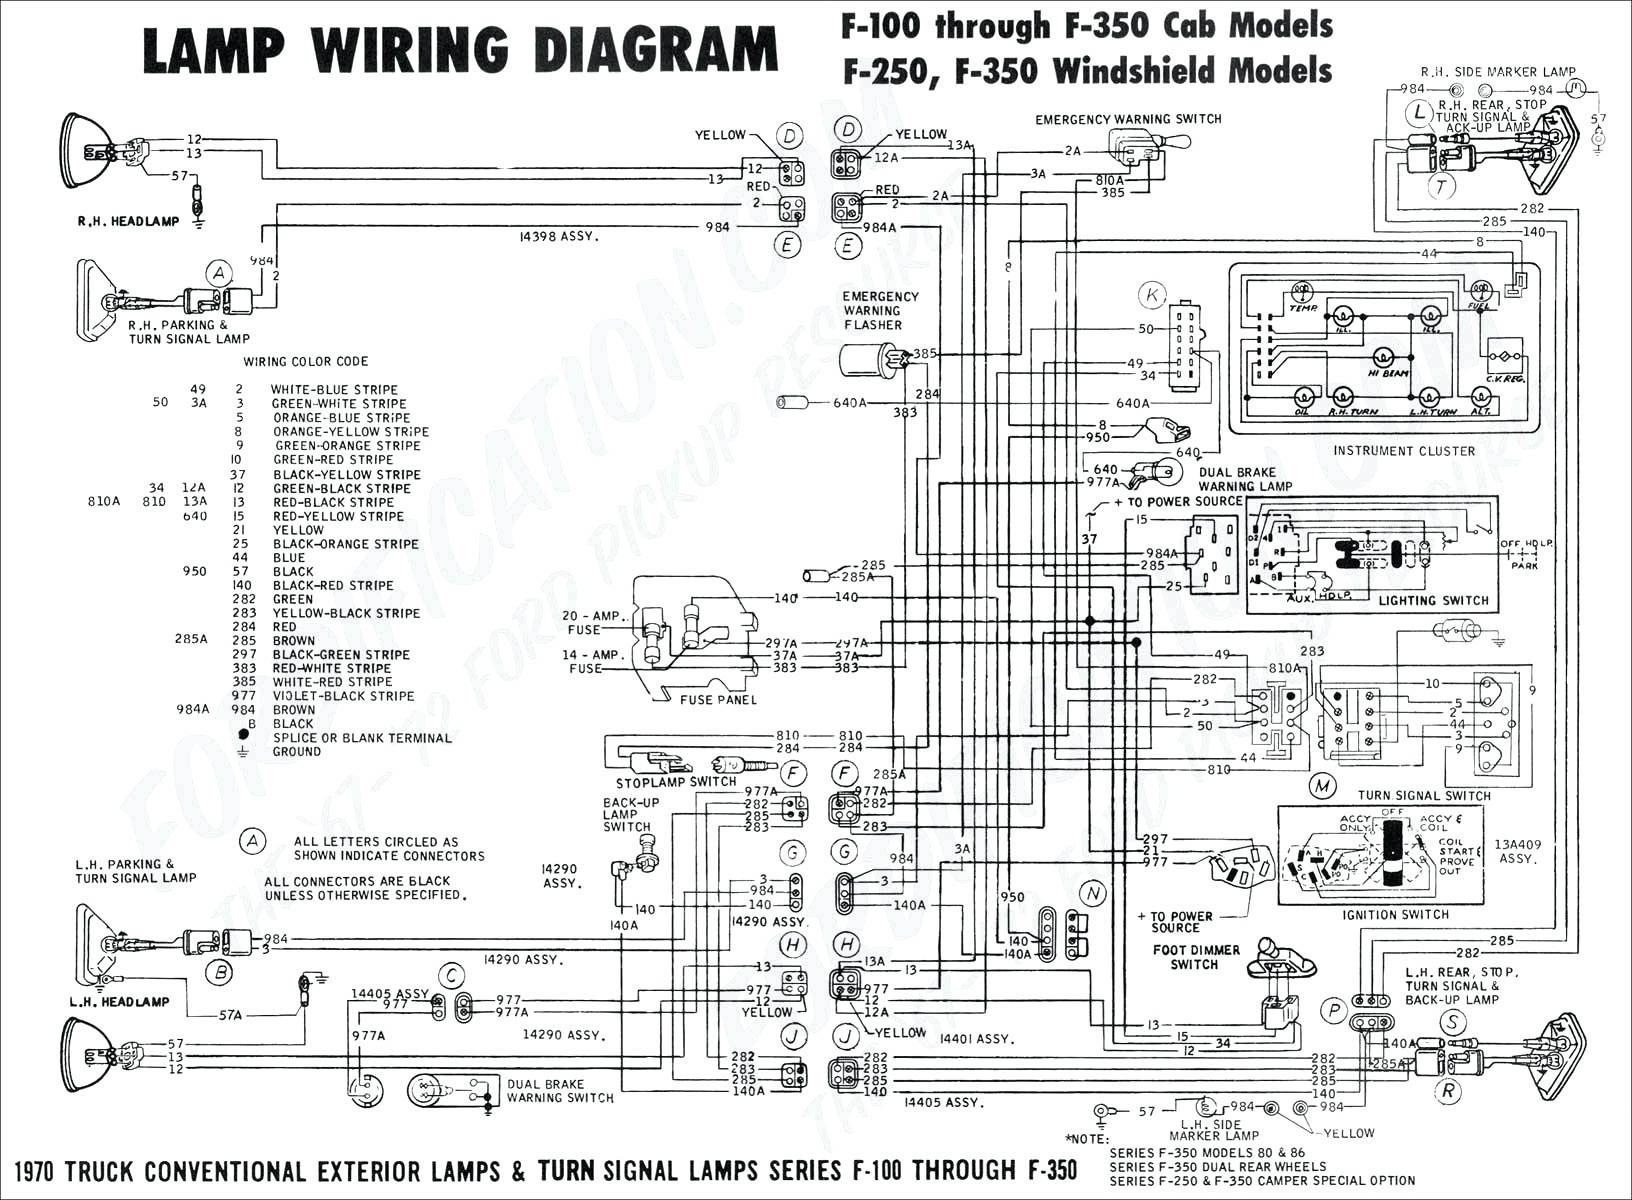 1998 Mercury Sable Engine Diagram 2001 ford Wiring Schematic Another Blog About Wiring Diagram • Of 1998 Mercury Sable Engine Diagram